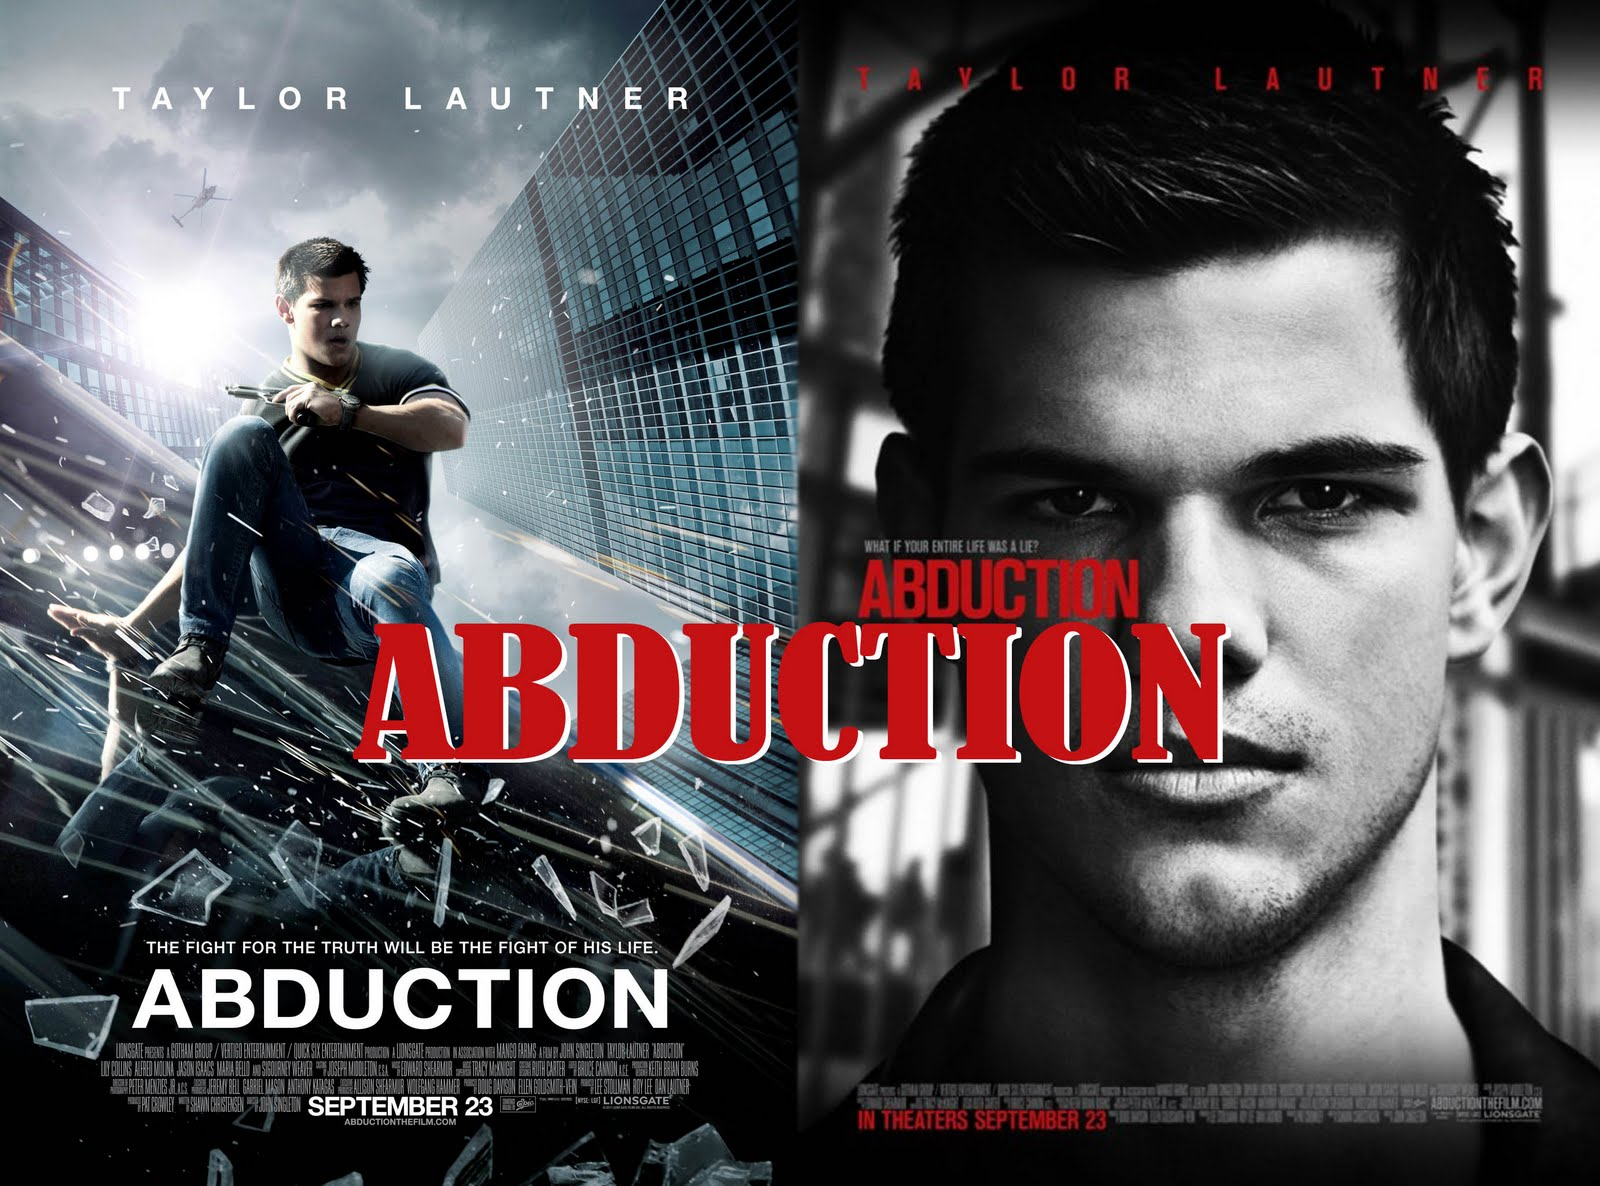 Movie Posters 2011: Movies: Abduction (2011